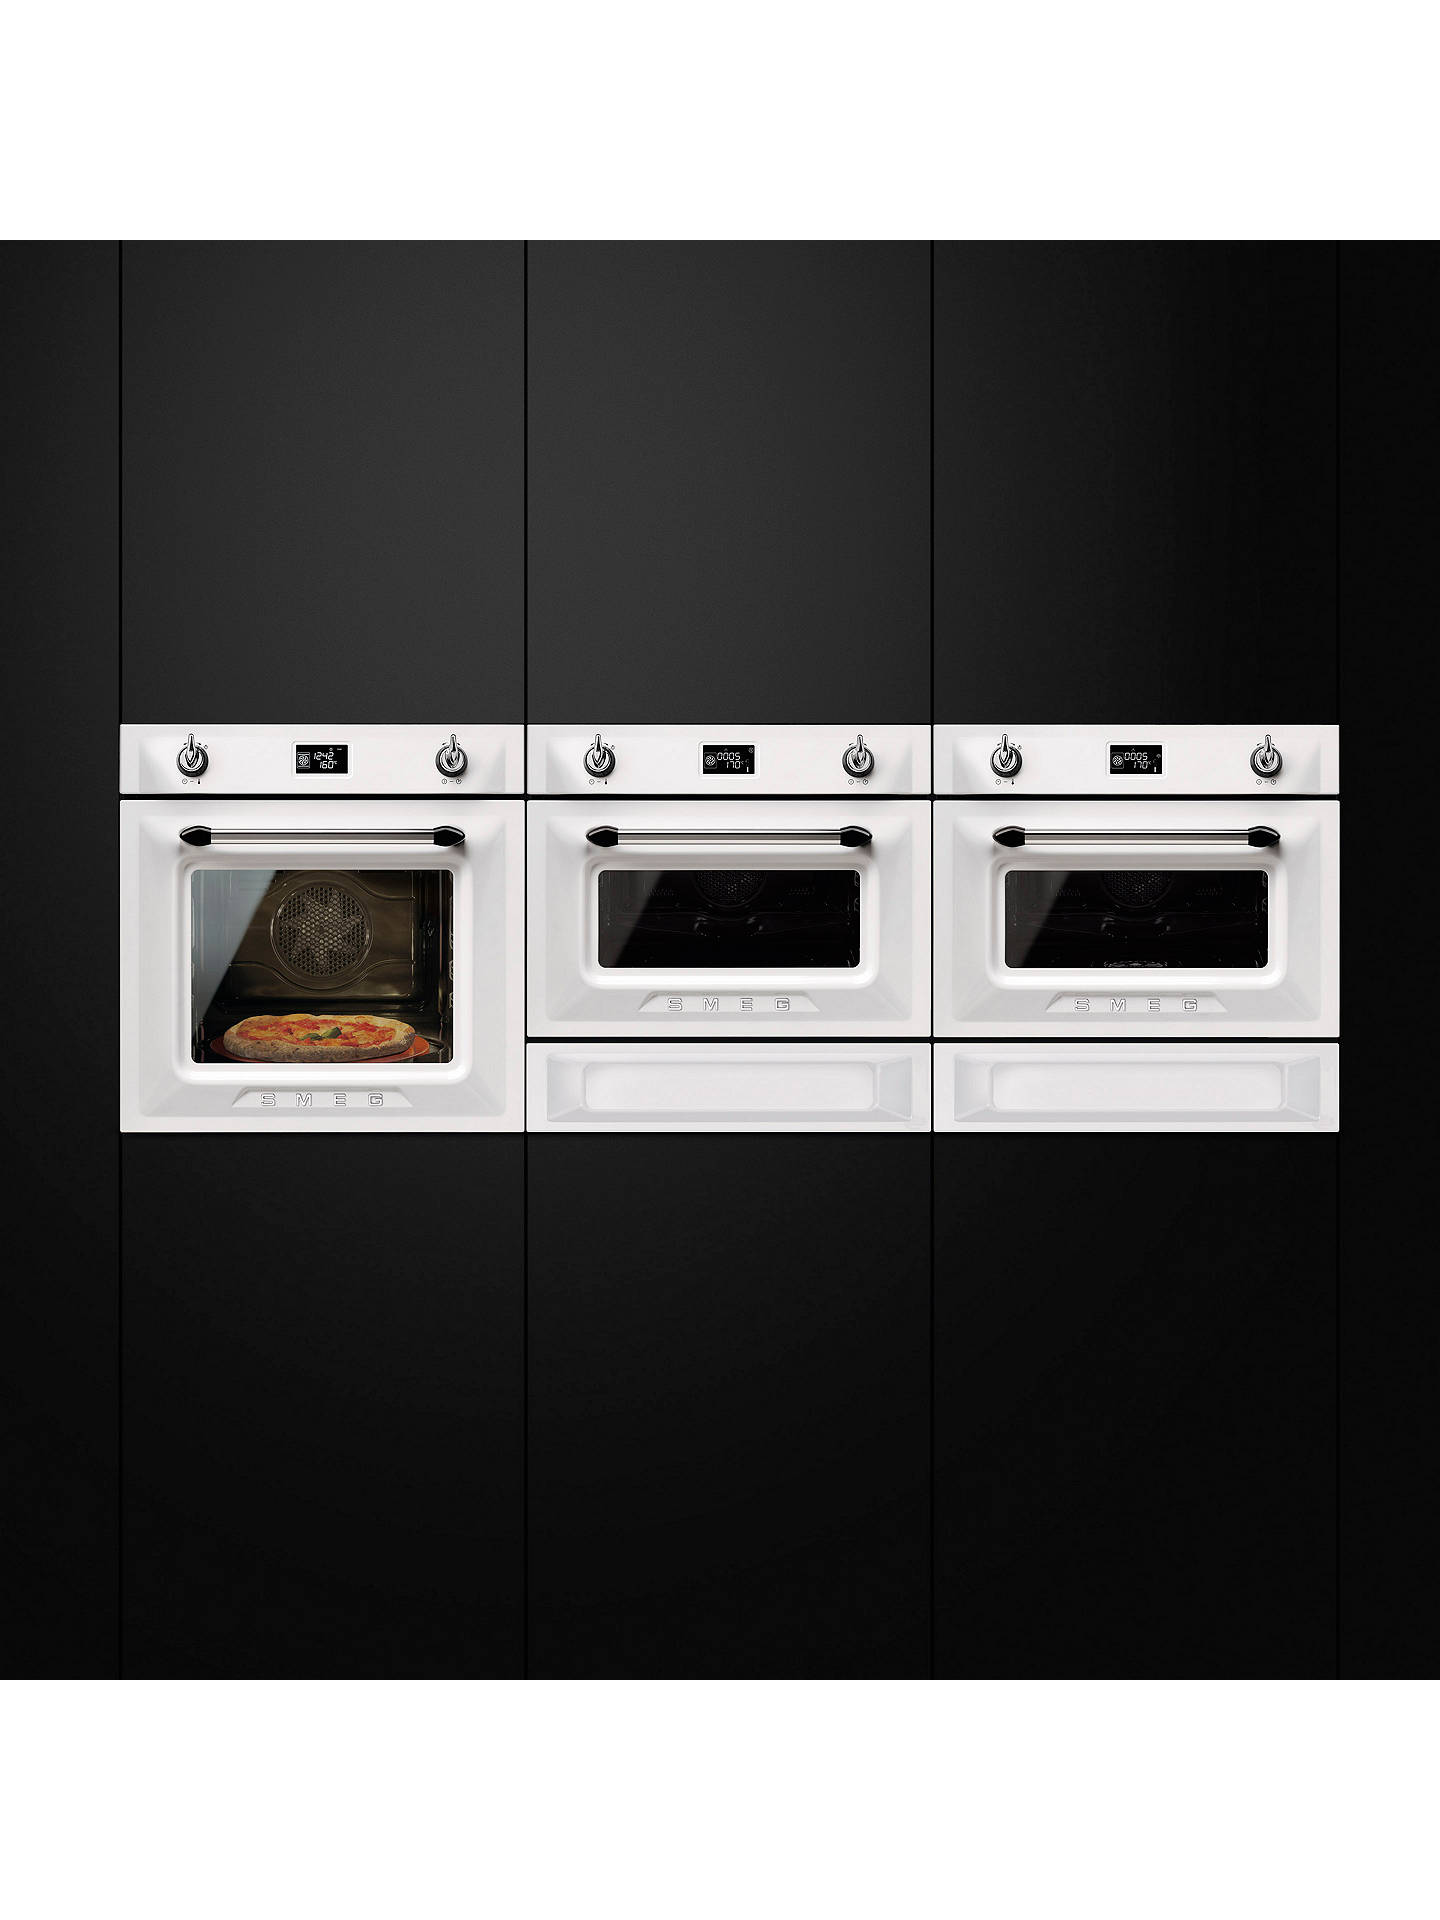 BuySmeg SF4920MCB1 Victoria Built-In Single Microwave Oven Online at johnlewis.com